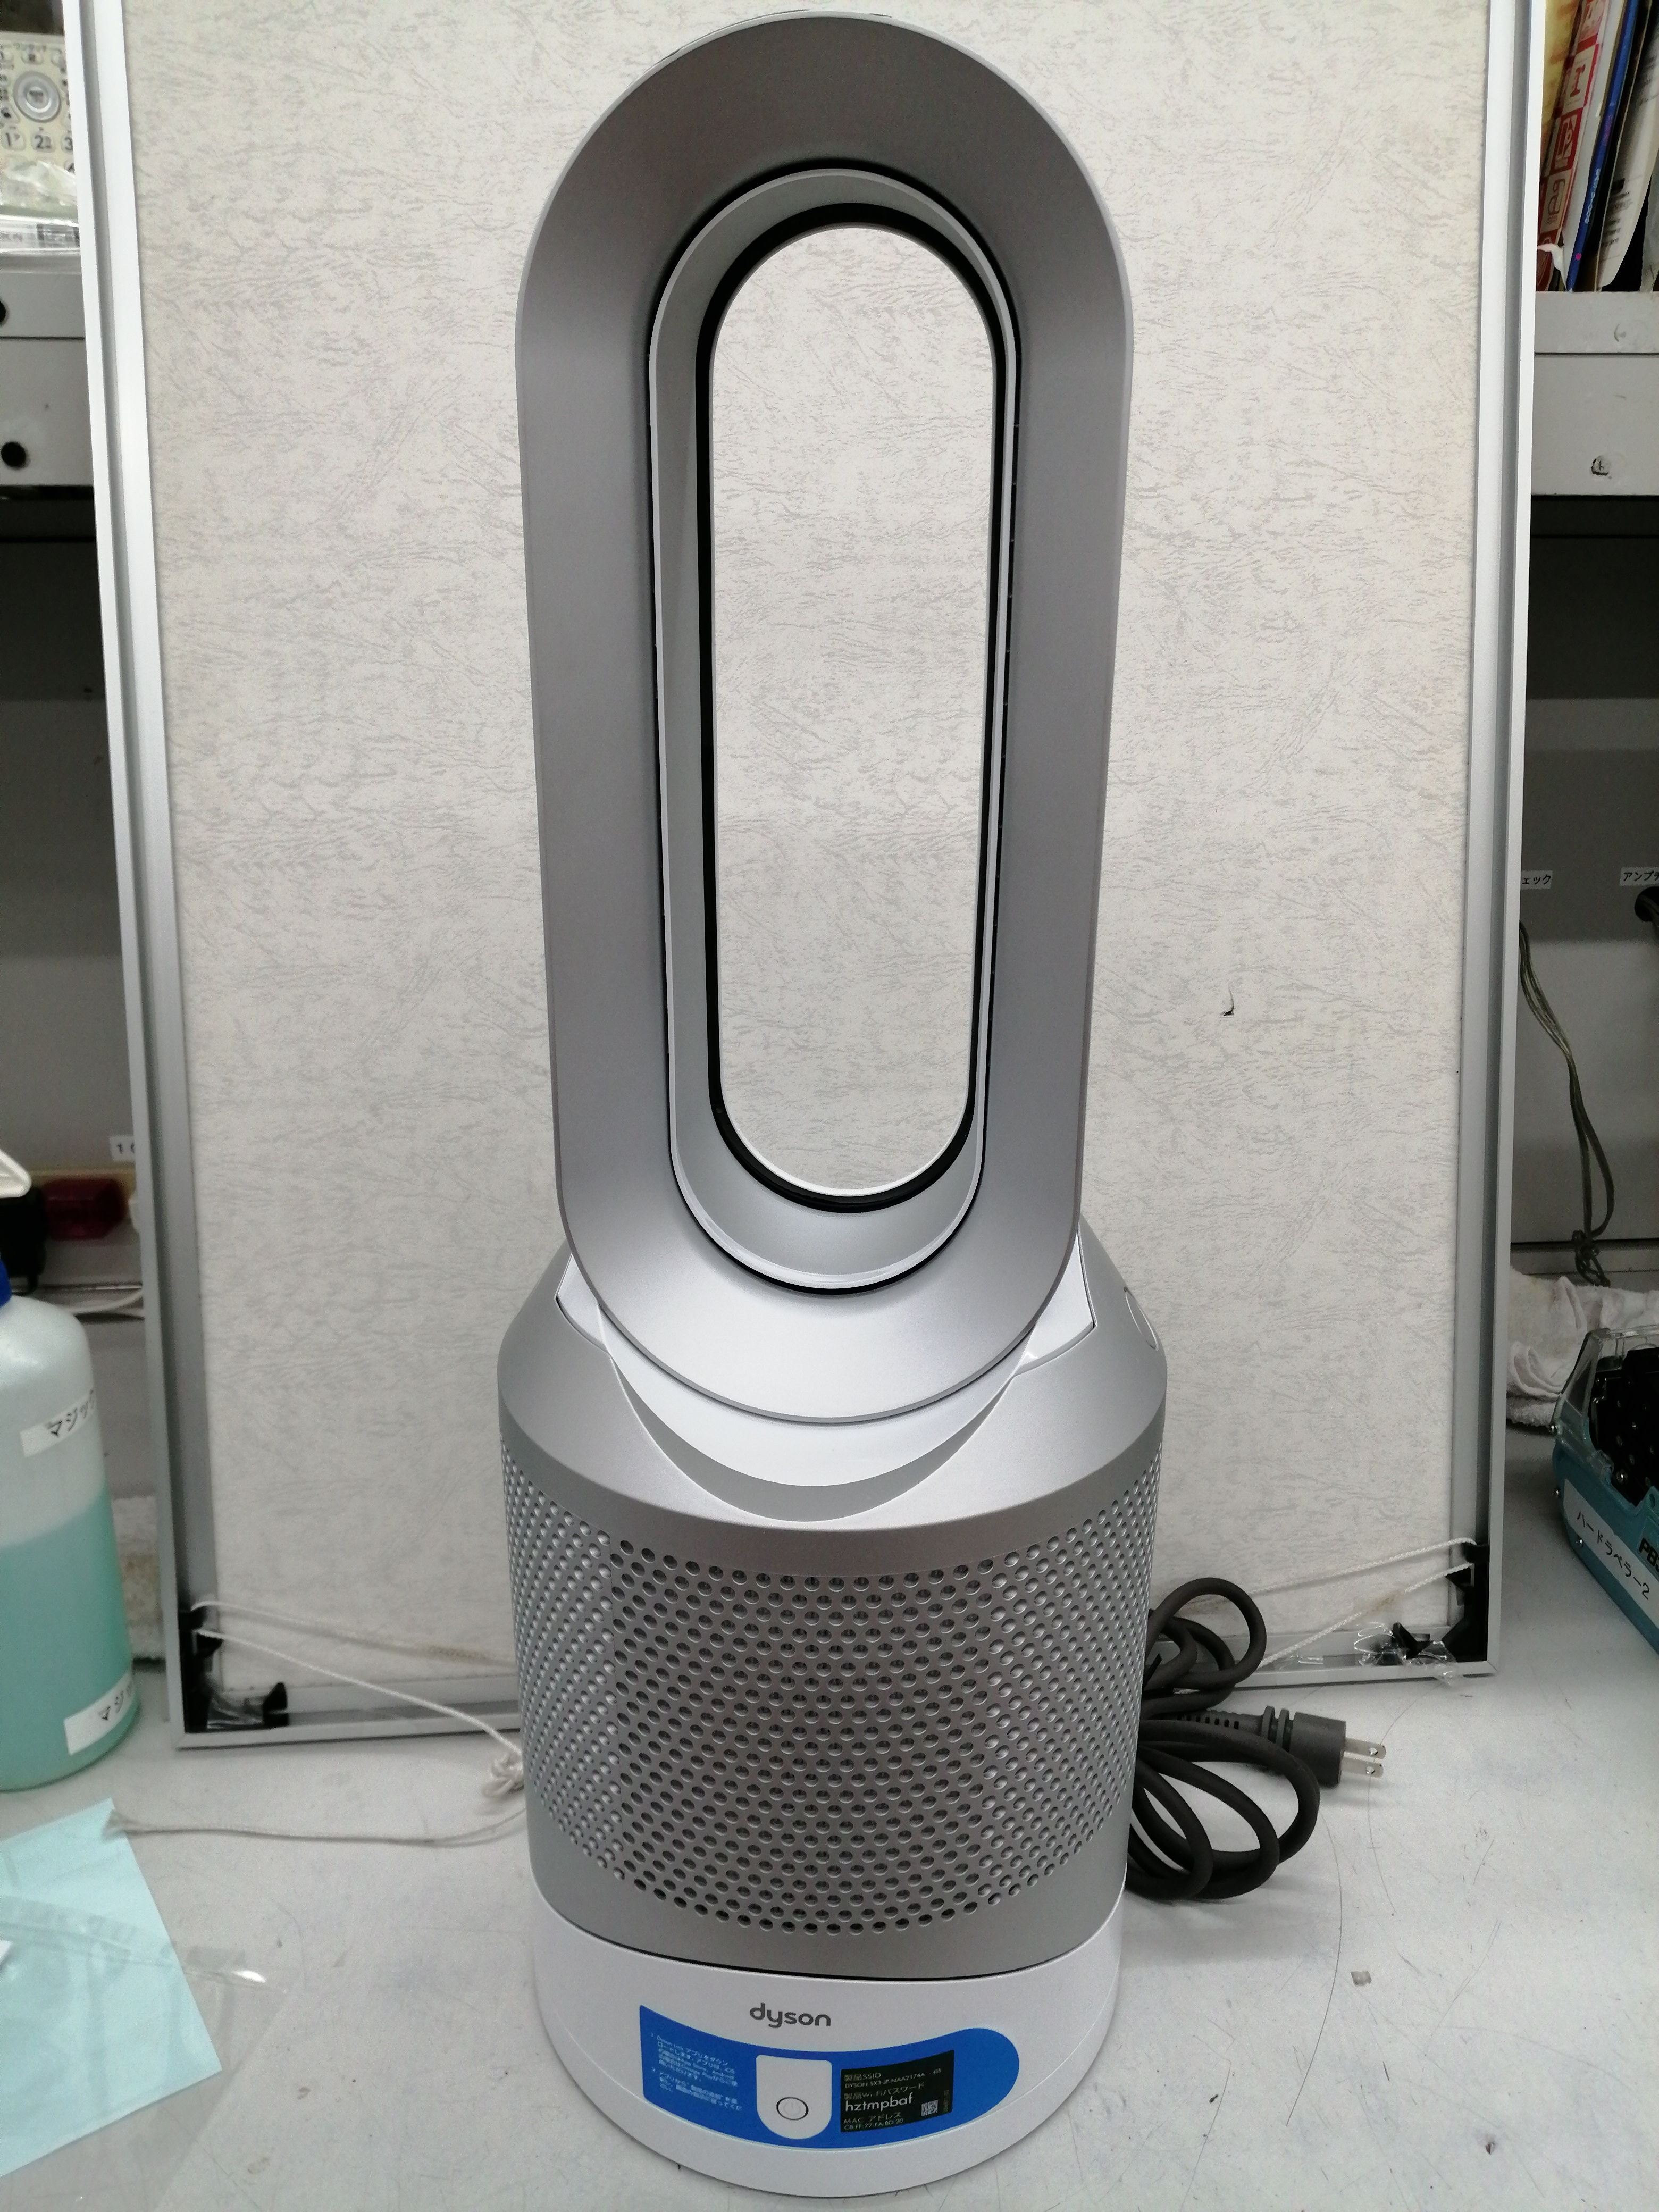 hot&cool|DYSON